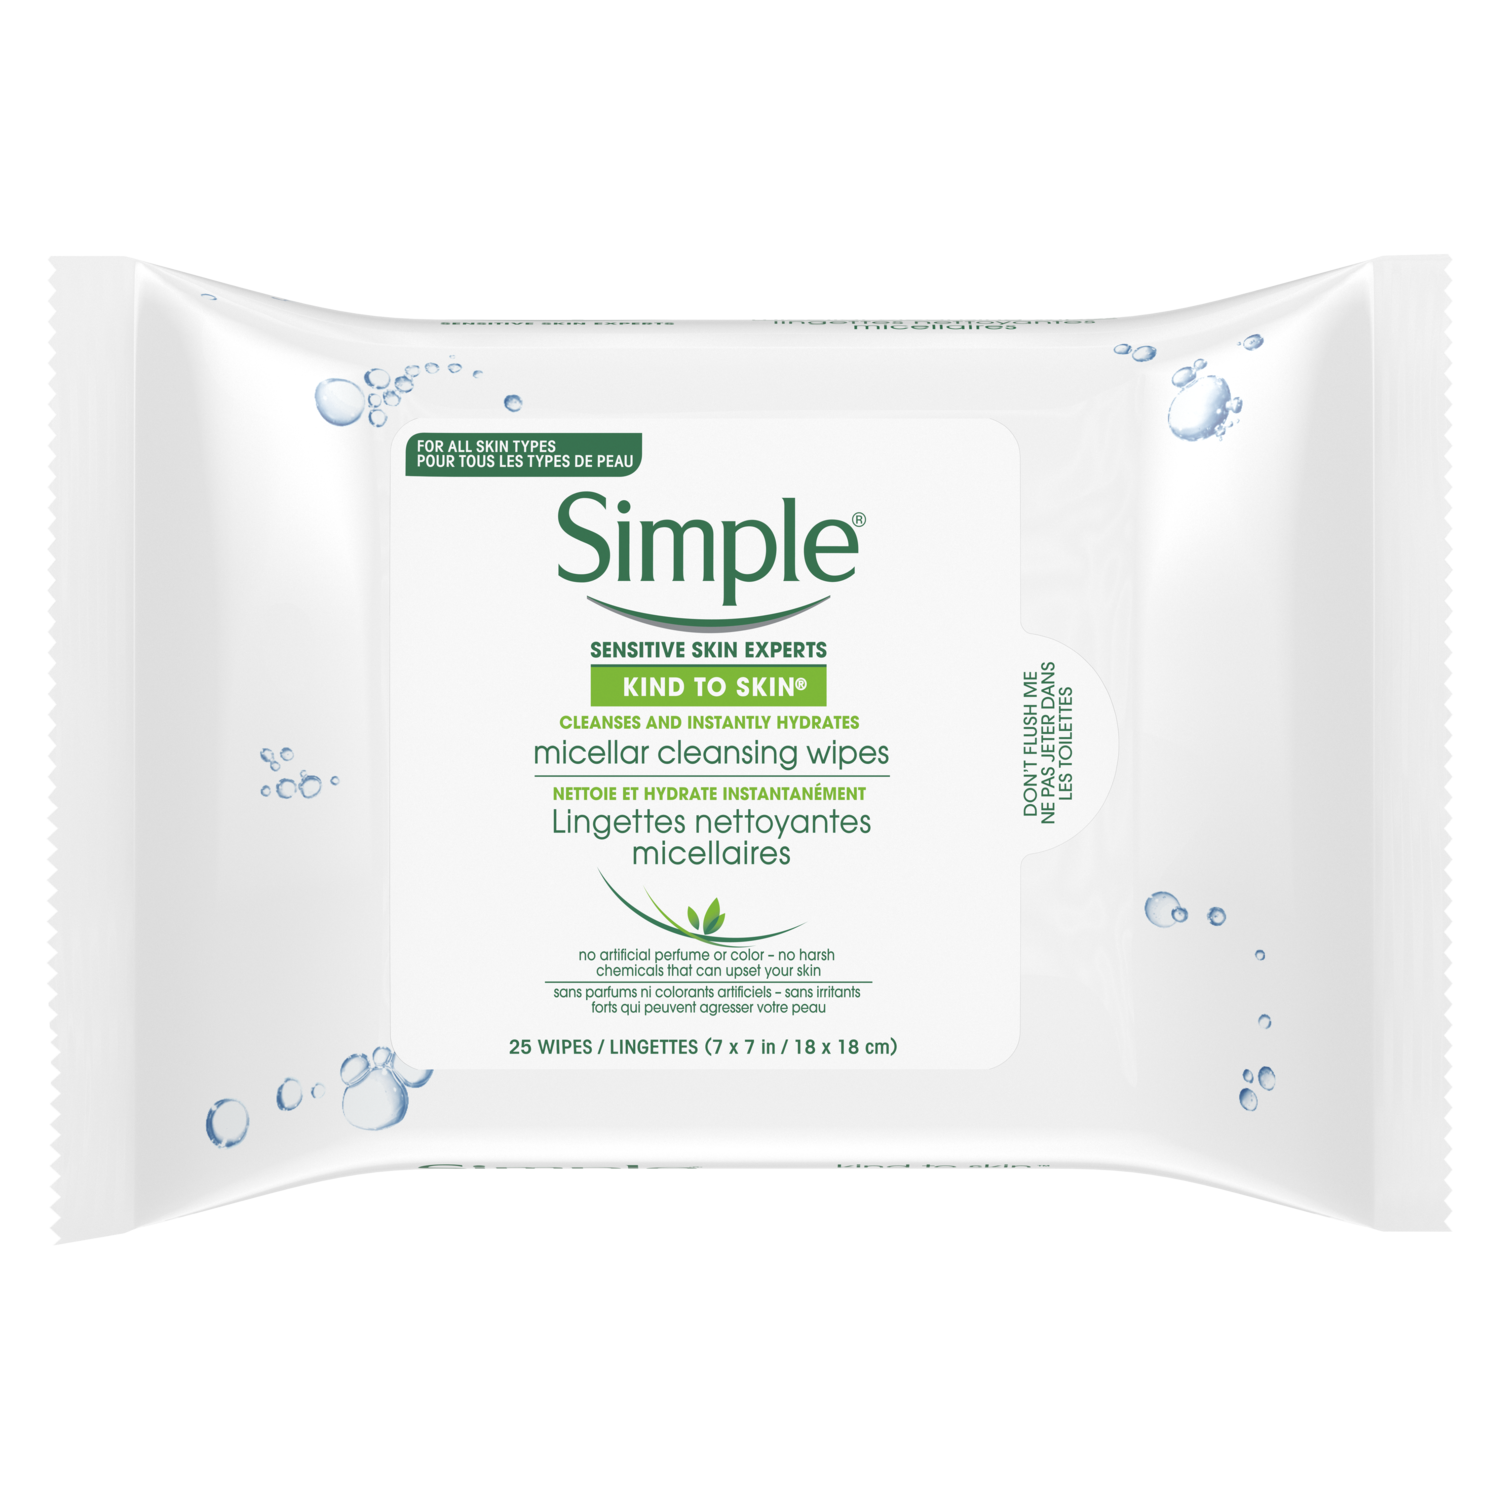 Kind to Skin Micellar Cleansing Wipes 25 wipes